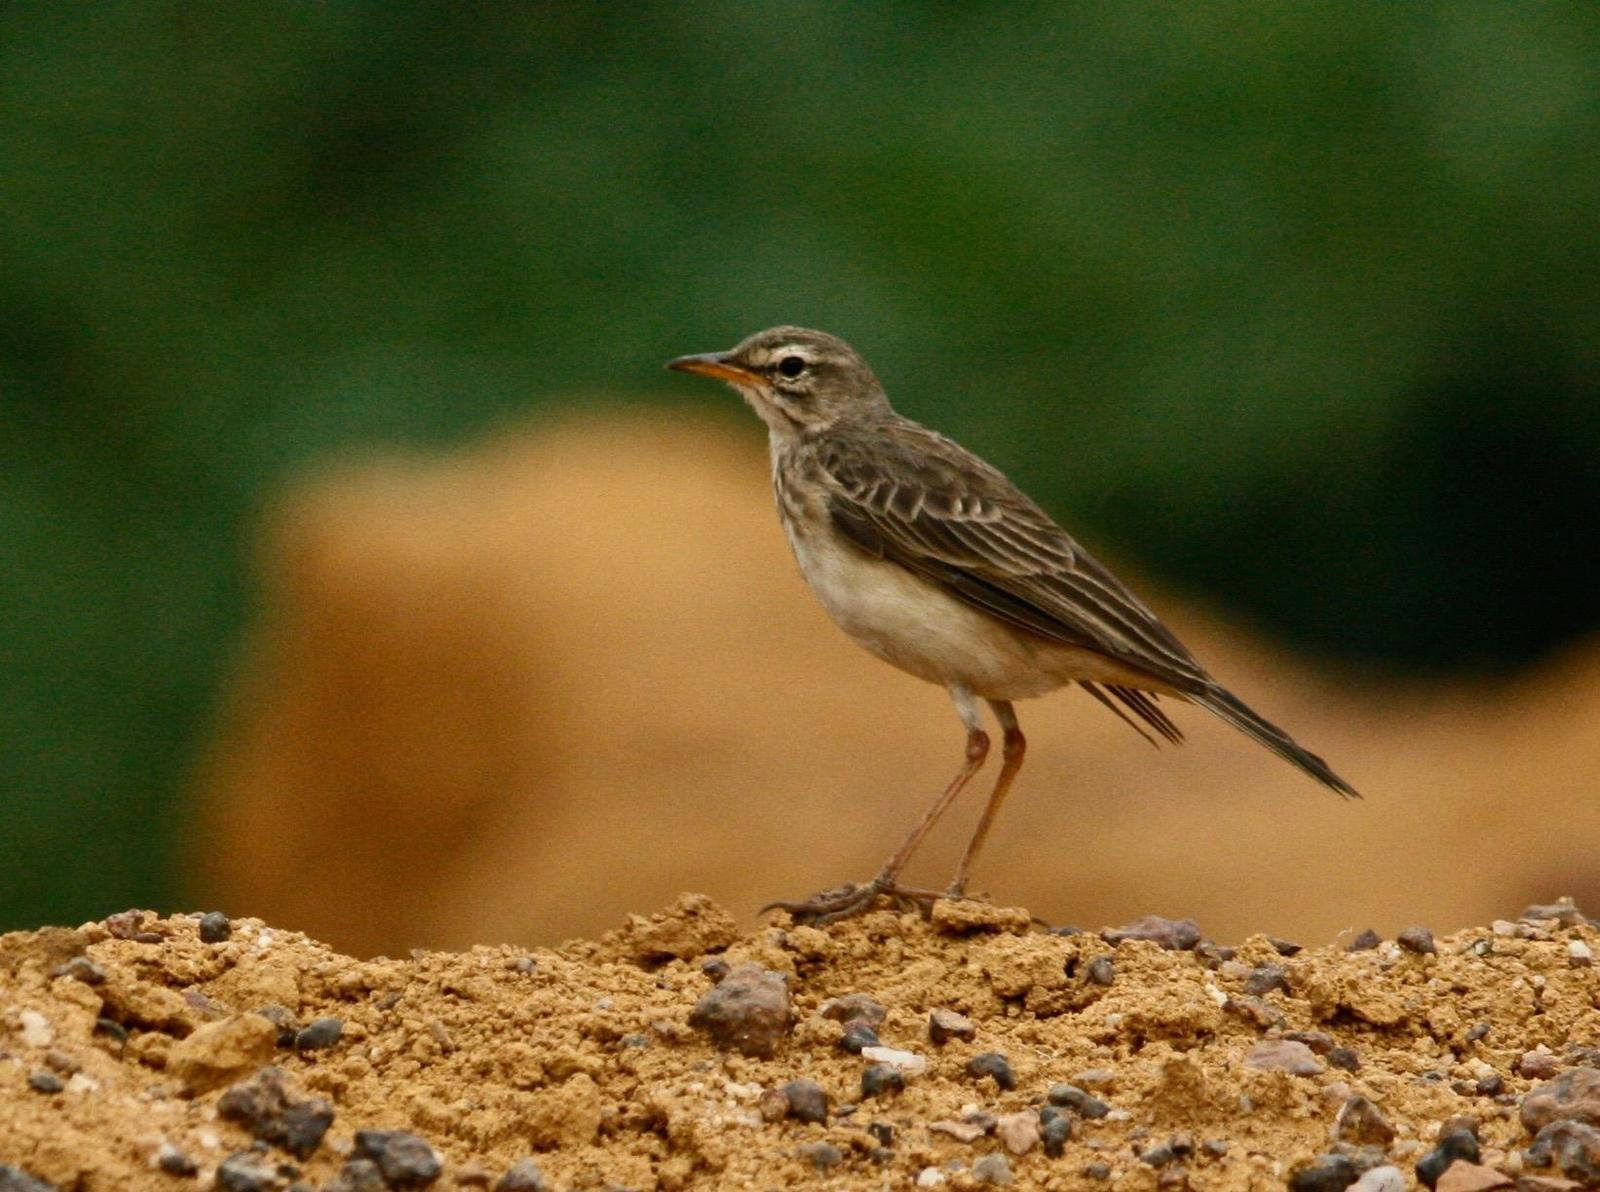 Long-legged Pipit Photo by Oscar Johnson